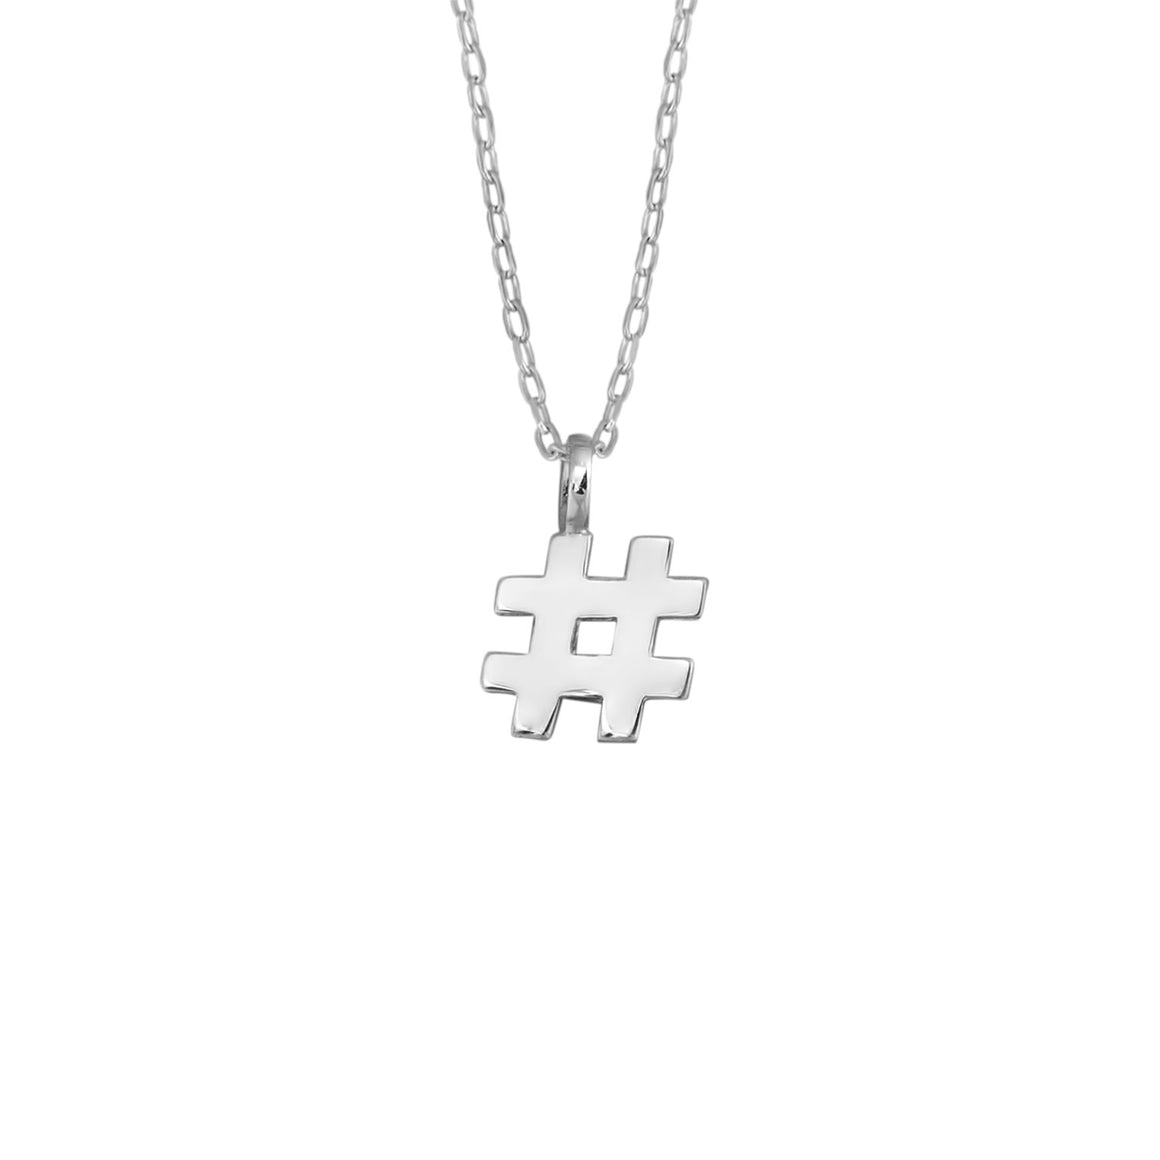 Edge Only Hashtag # Pendant in Sterling Silver